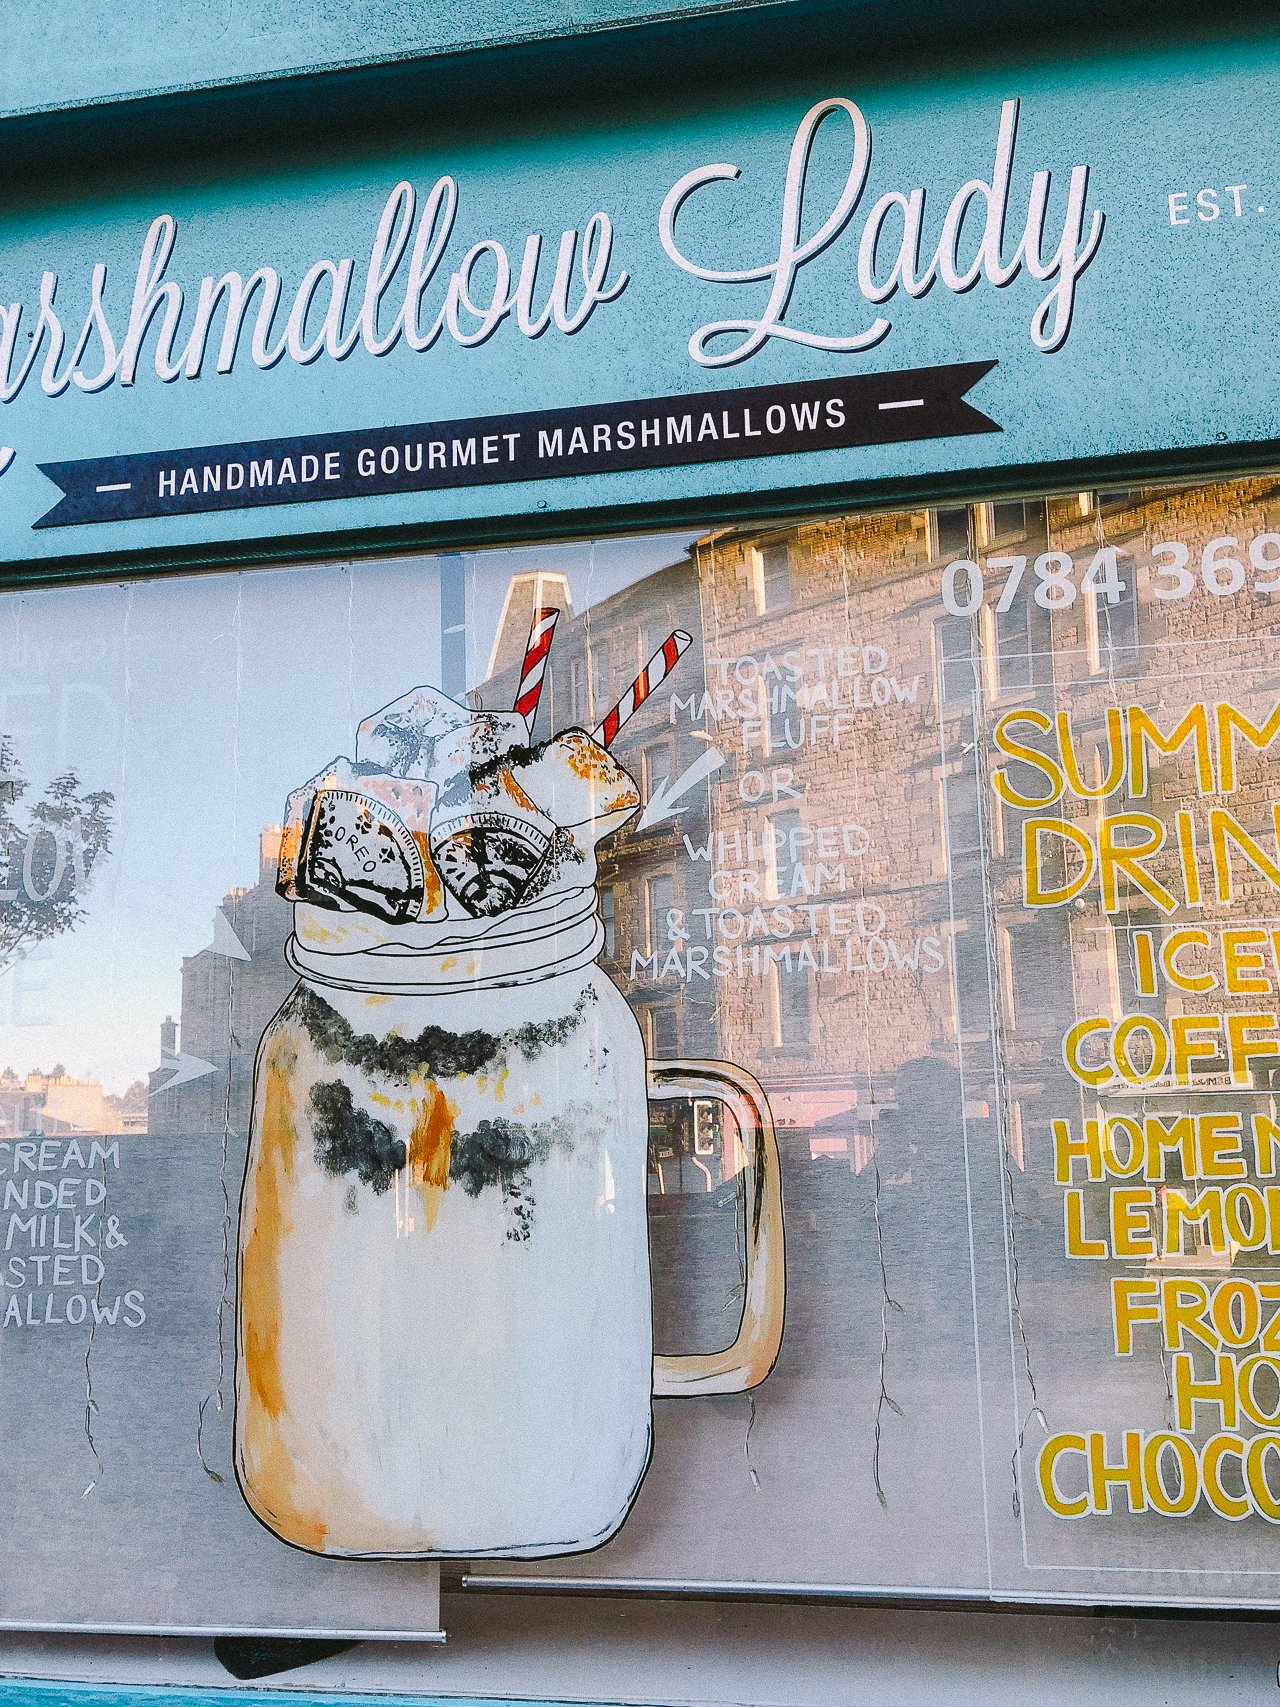 The Marshmallow Lady | Edinburgh Travel Guide by HonestlyYUM